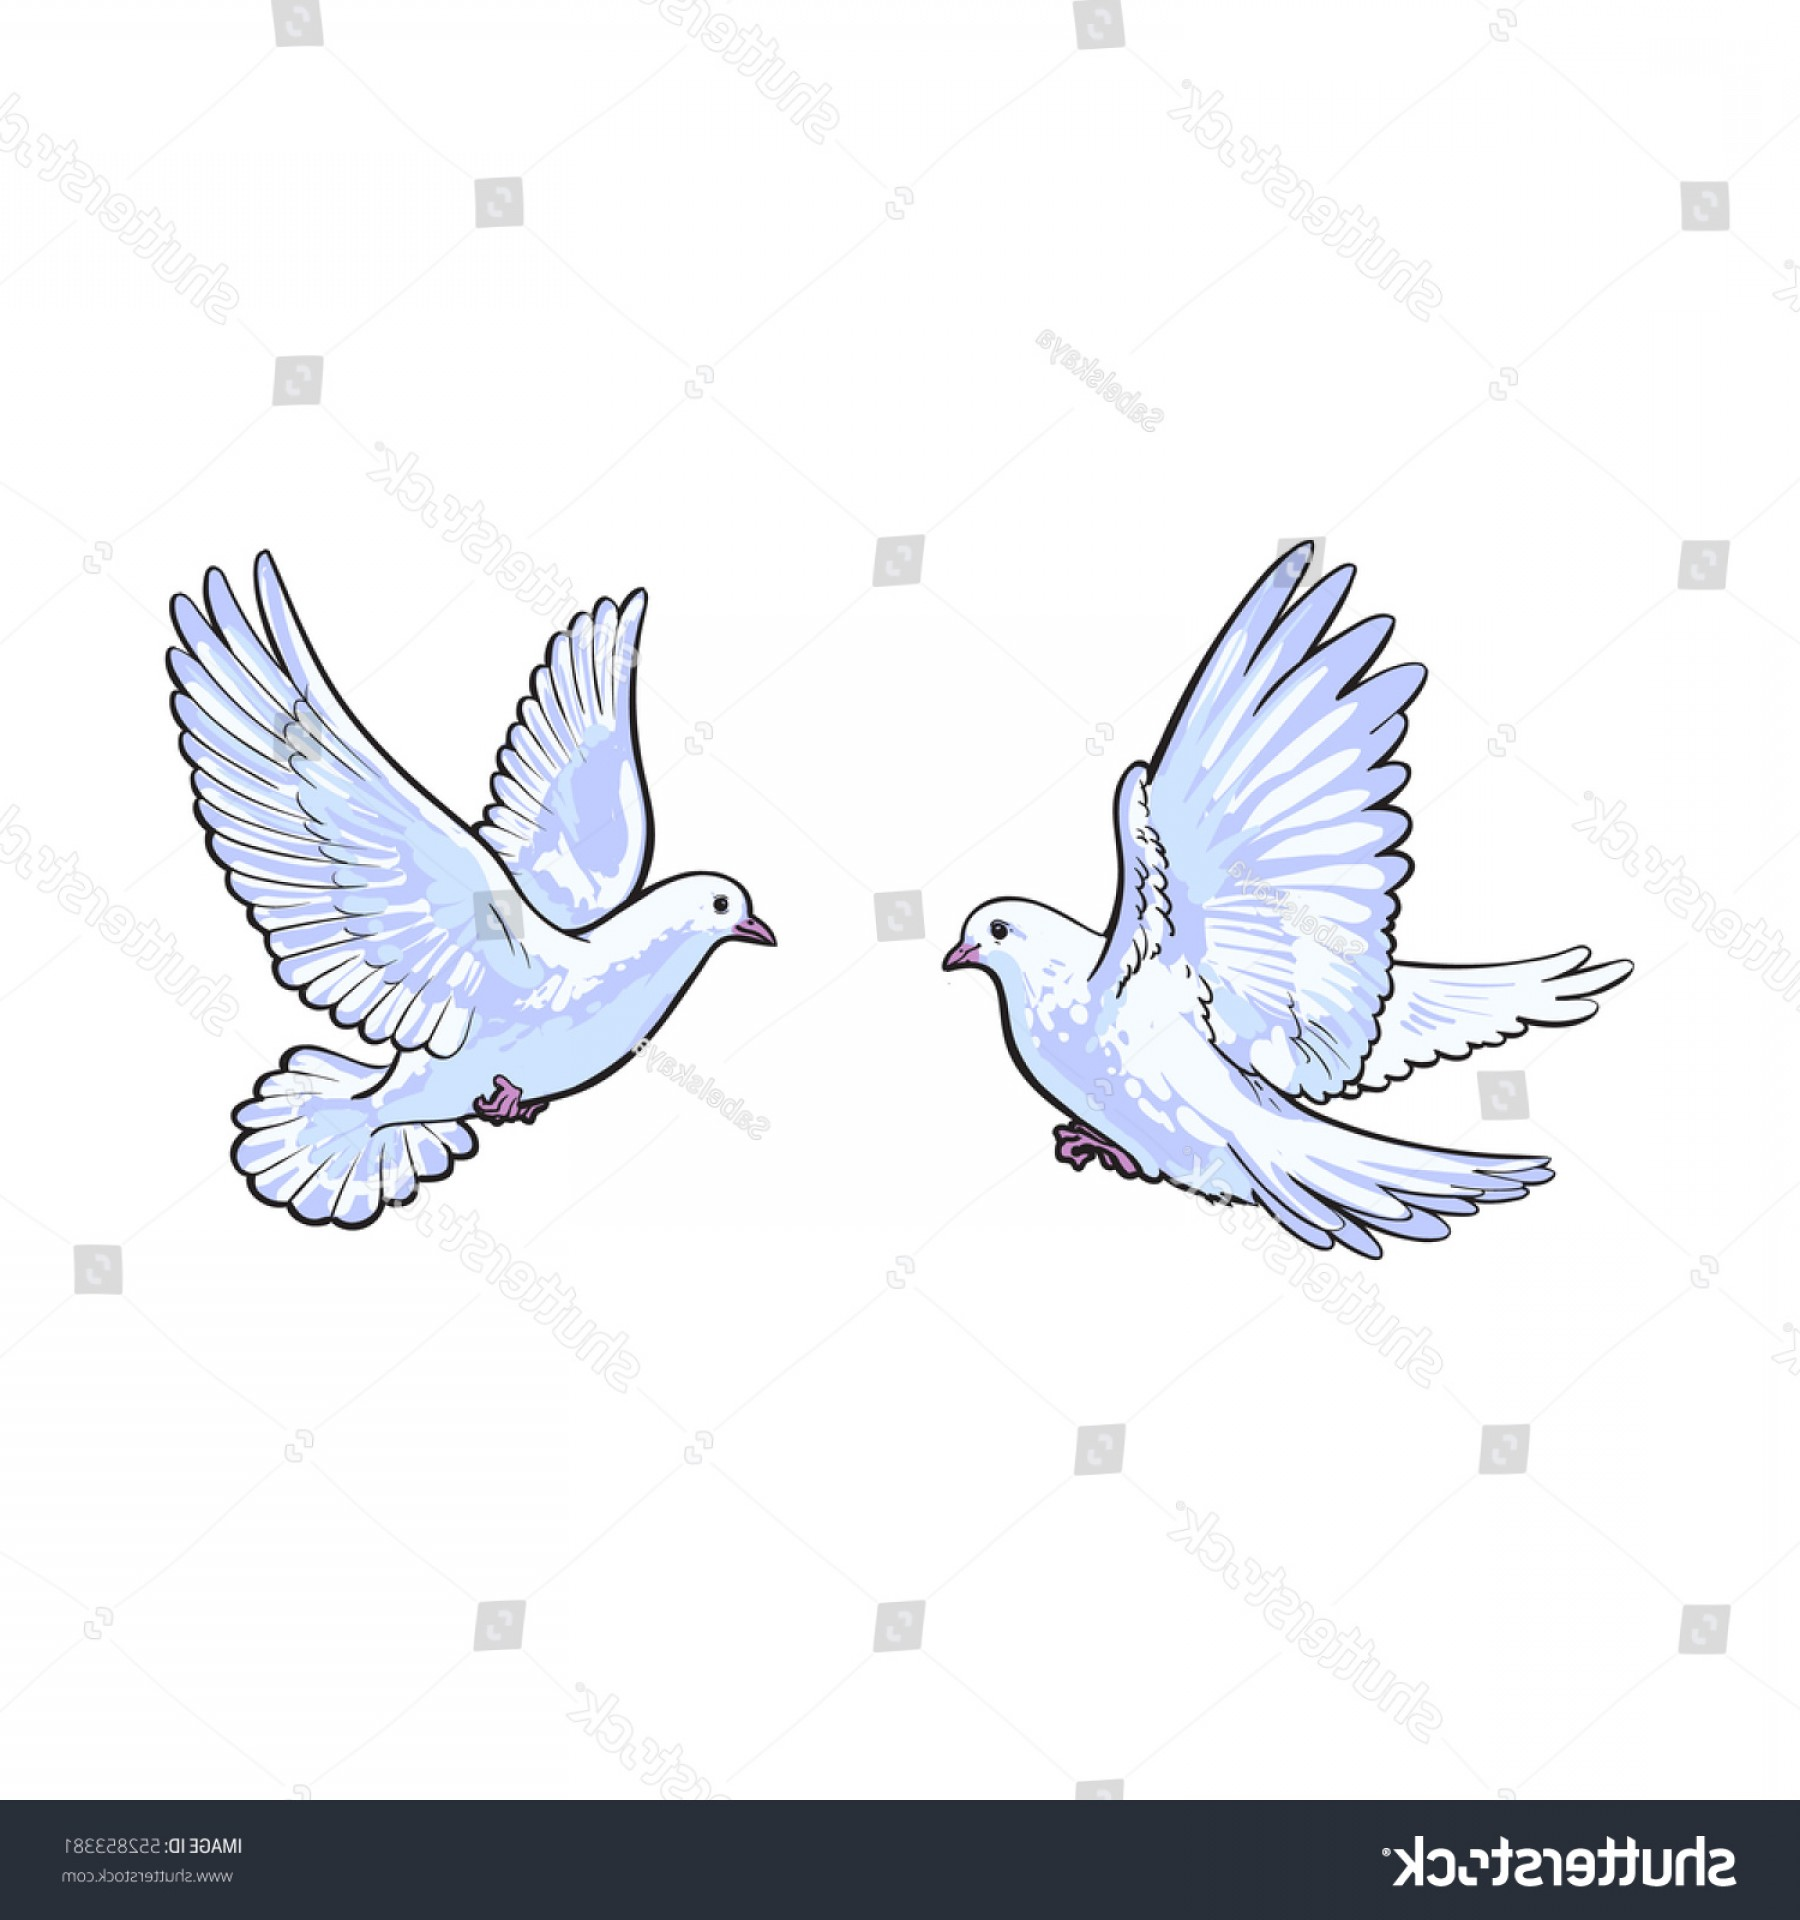 Vector Wedding Doves 2: Two Free Flying White Doves Sketch